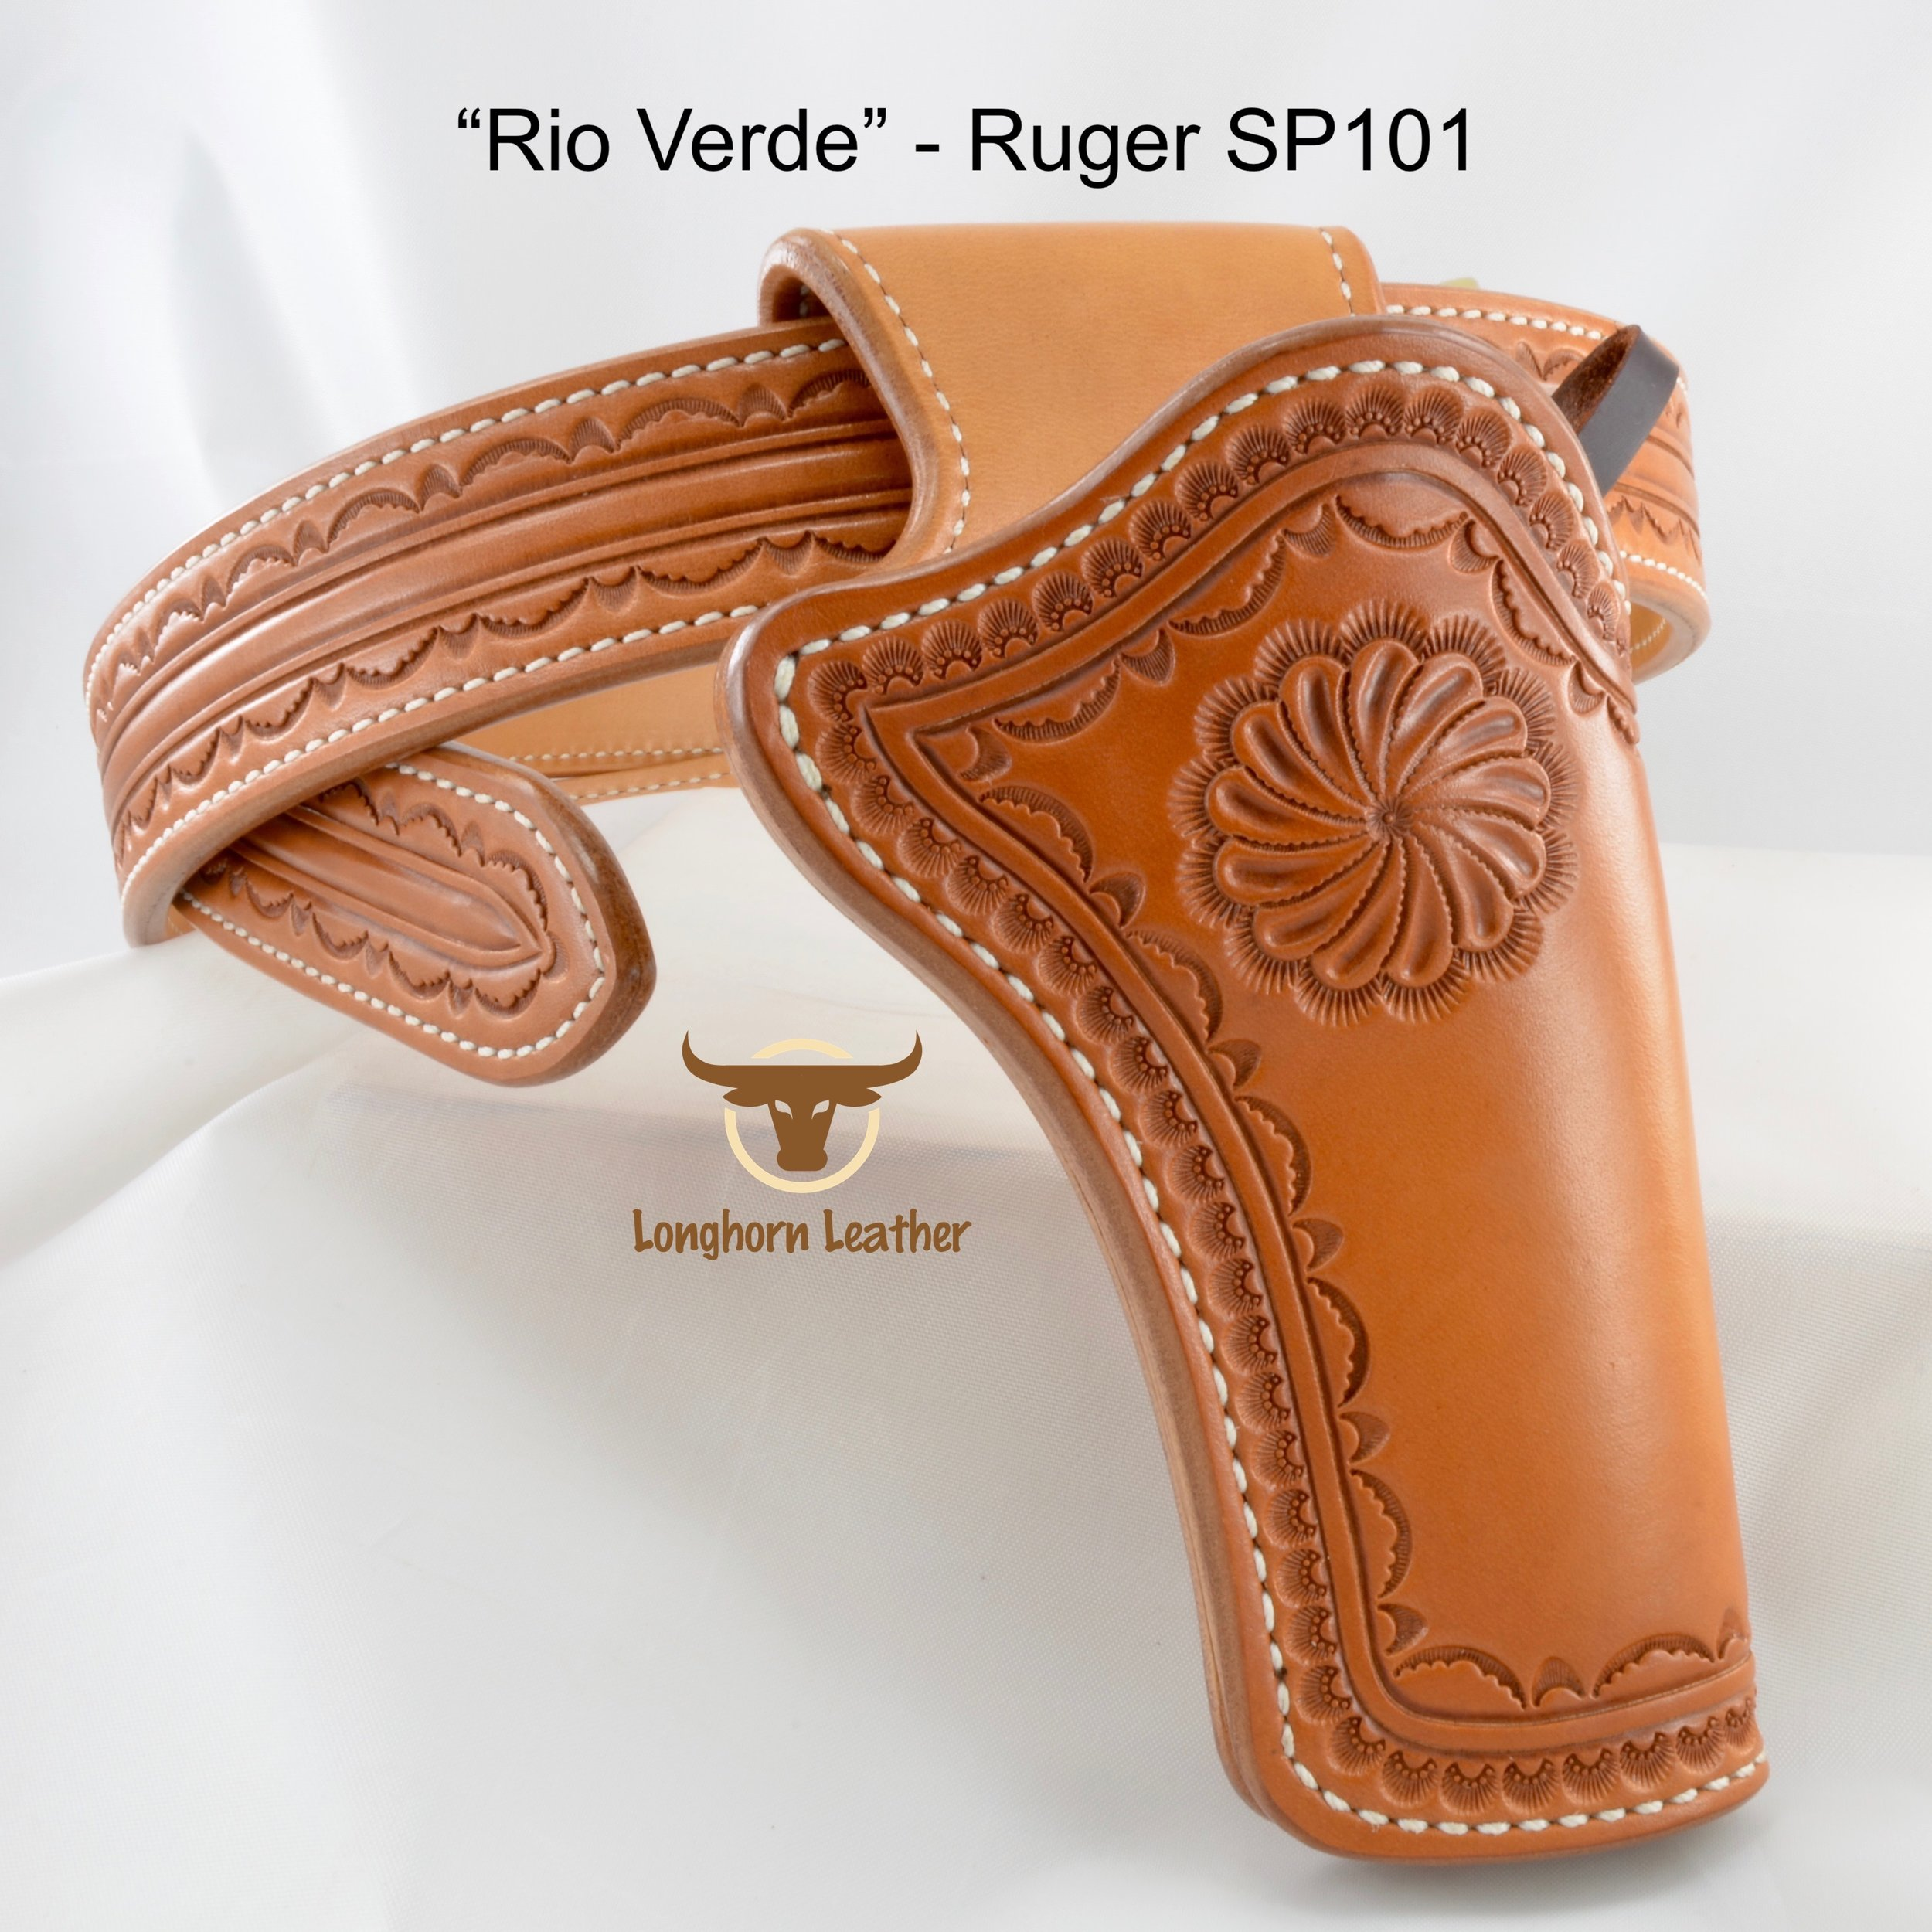 Rio Verde - Single Action Holster